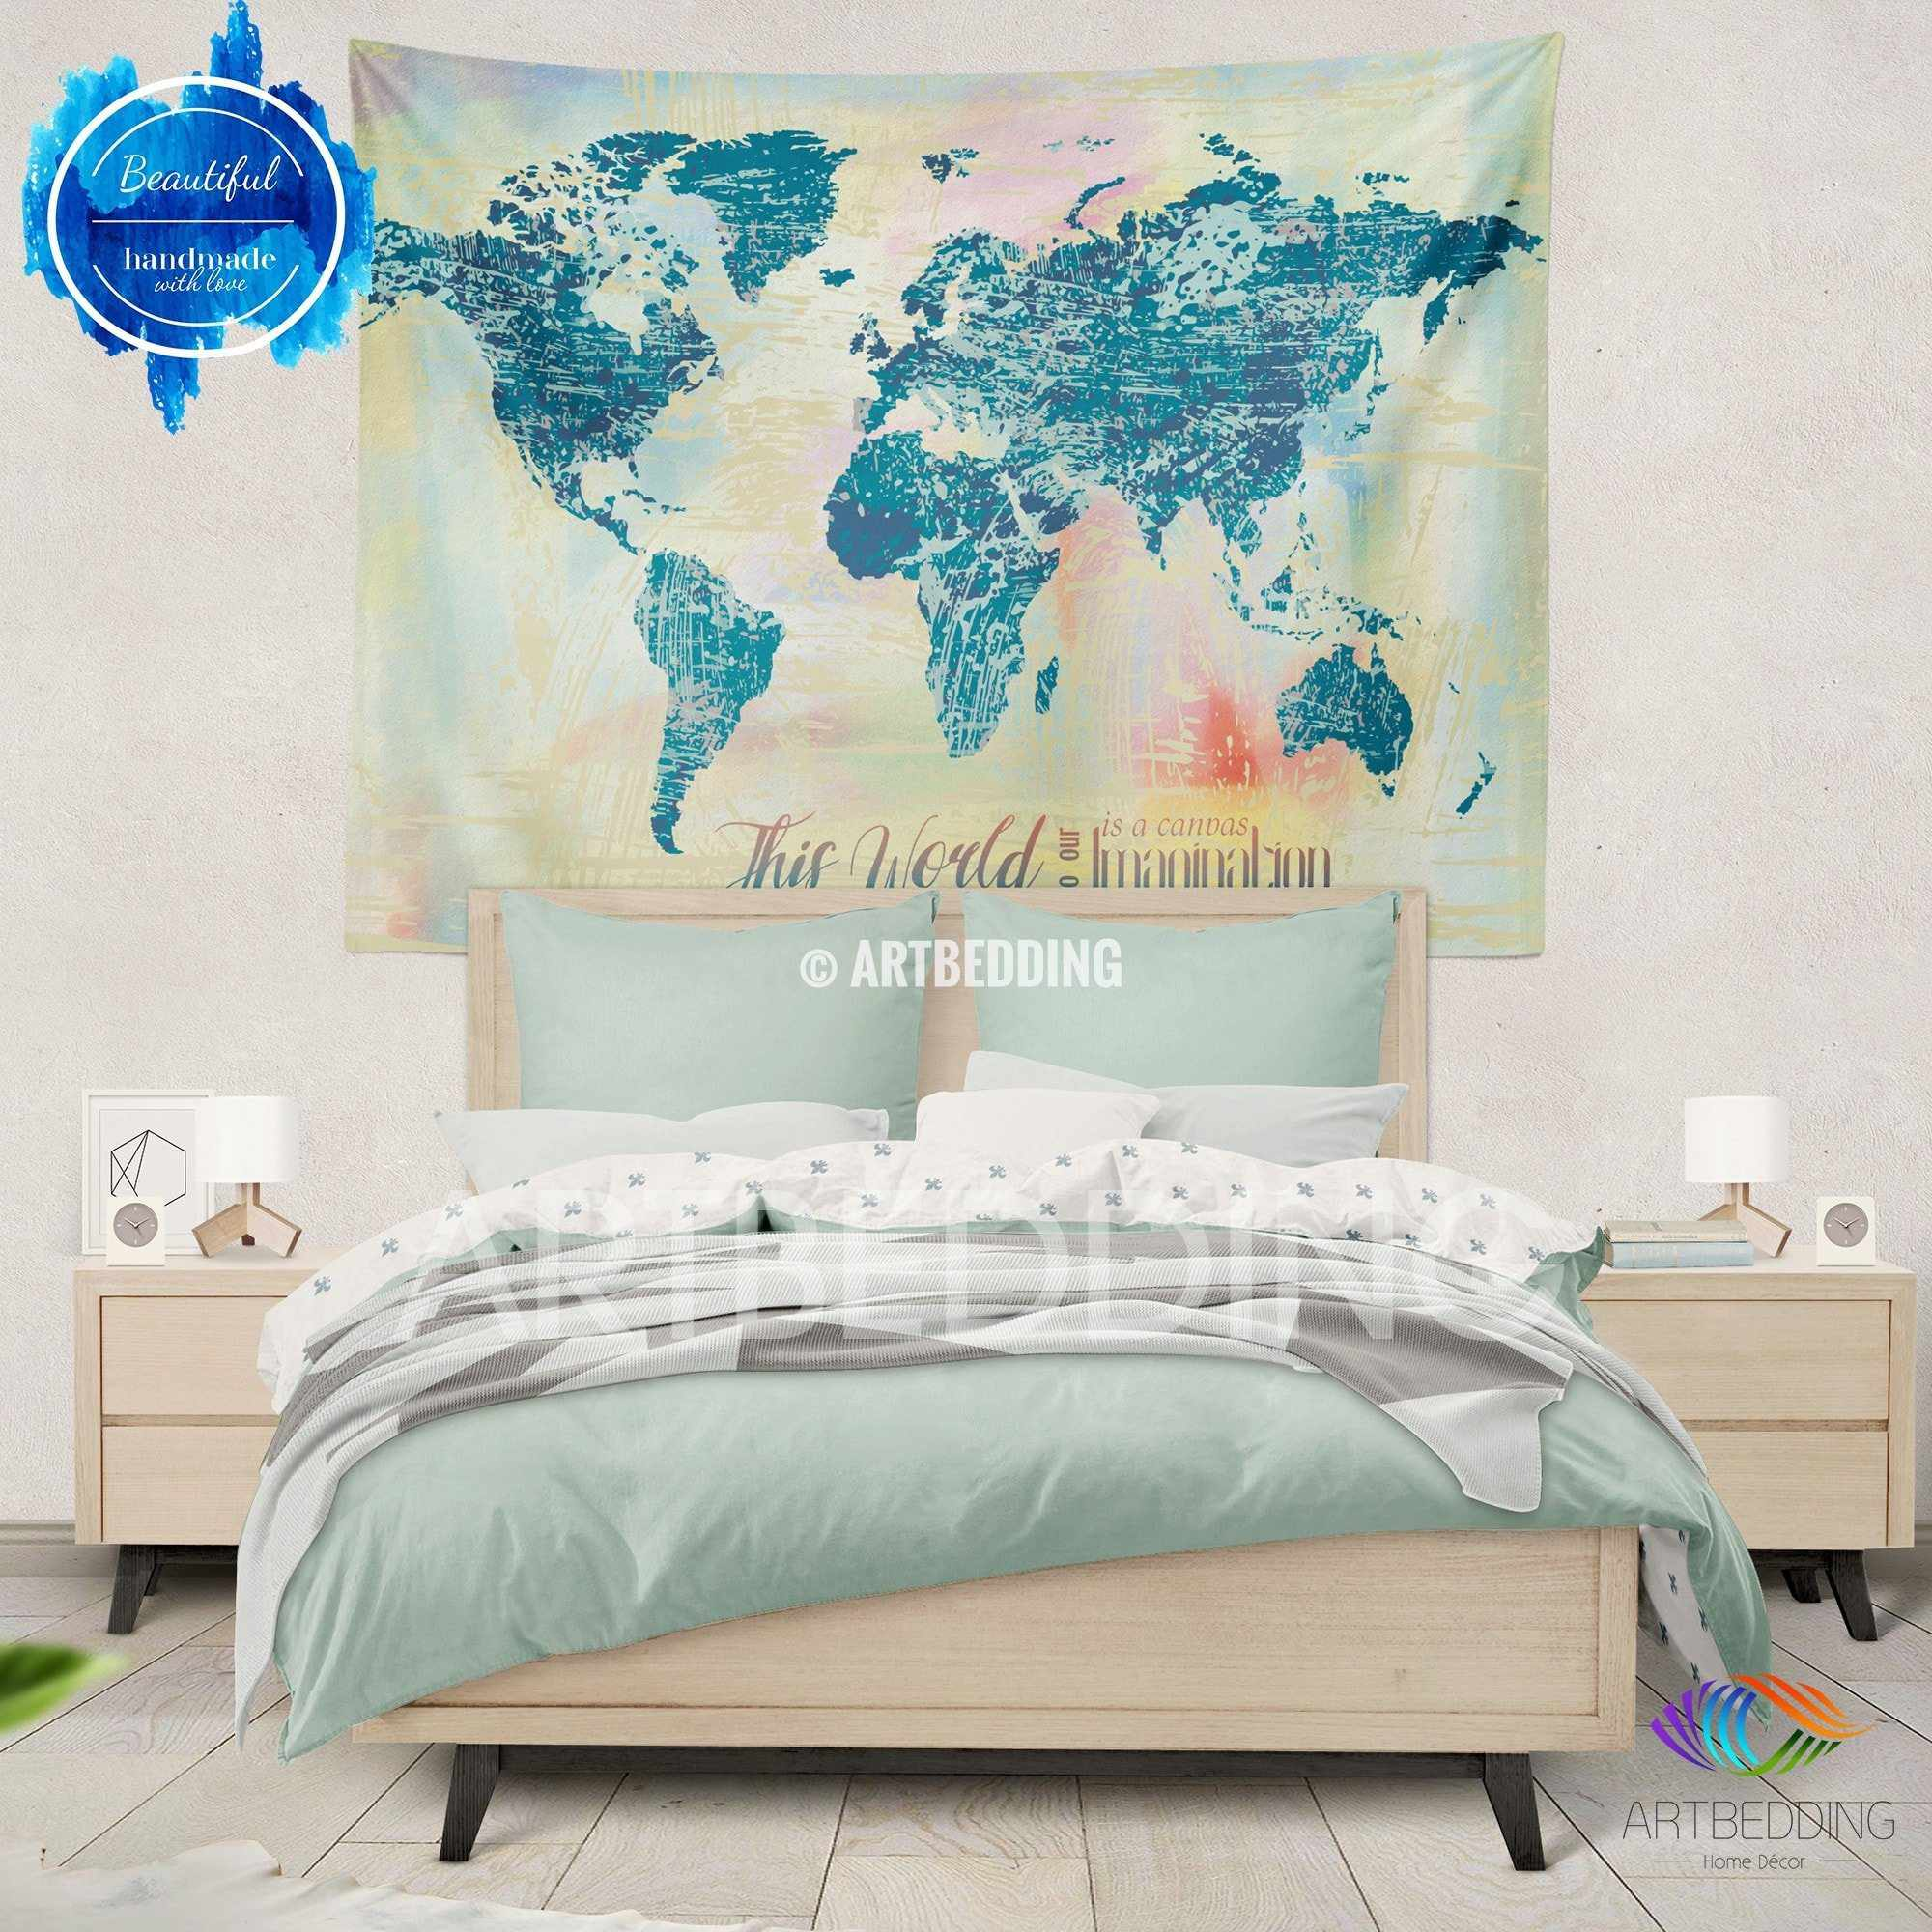 Watercolor world map wall tapestry grunge world map wall tapestry watercolor world map wall tapestry grunge world map wall tapestry hippie tapestry wall hanging gumiabroncs Images